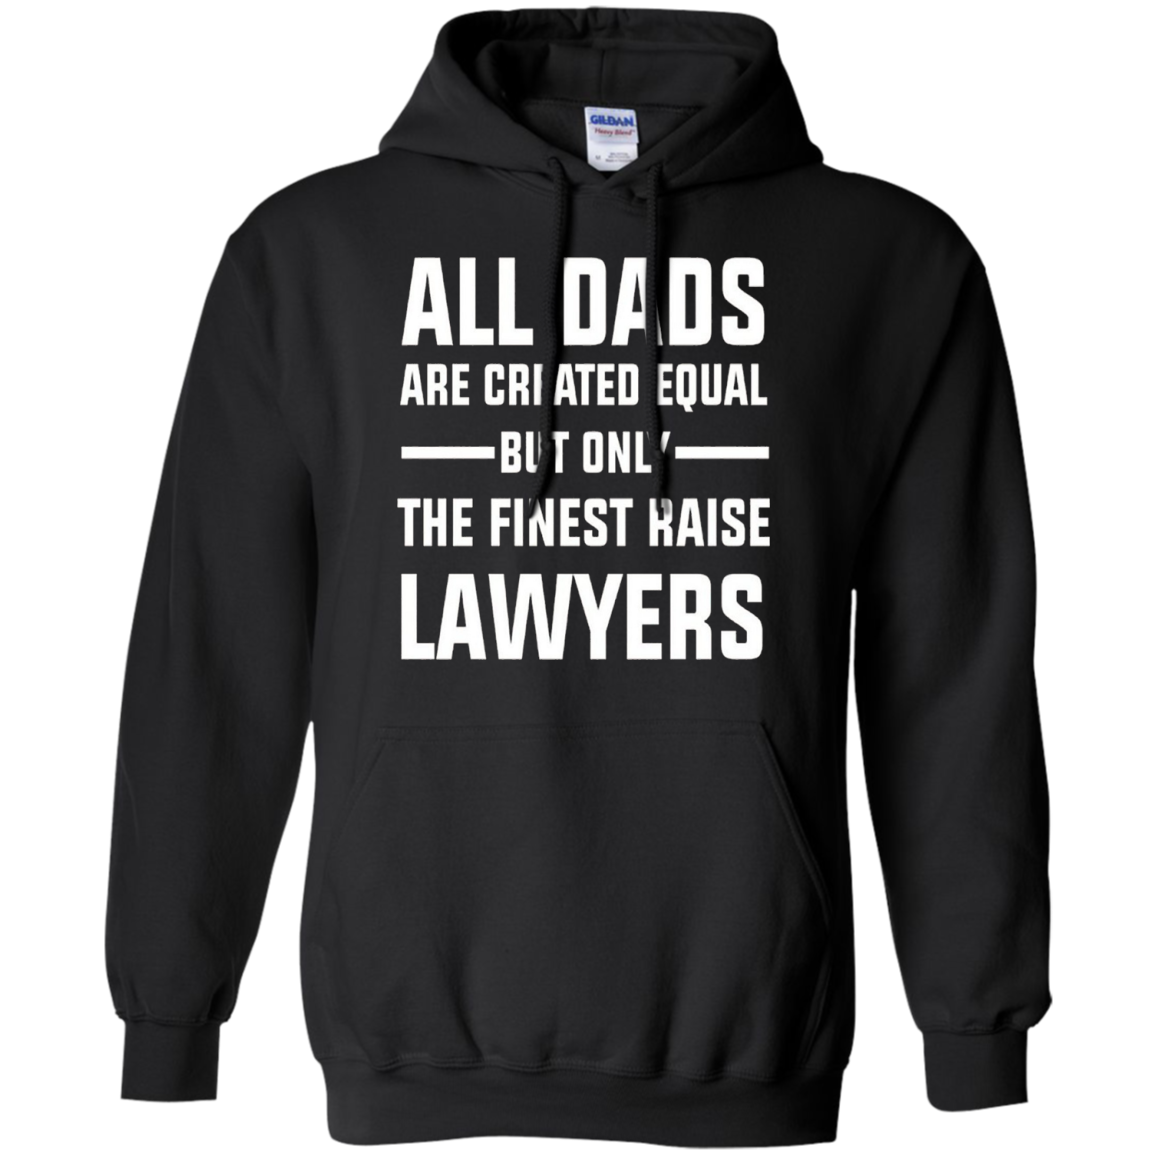 All Dads Lawyers Shirts, Father's Day gift tee